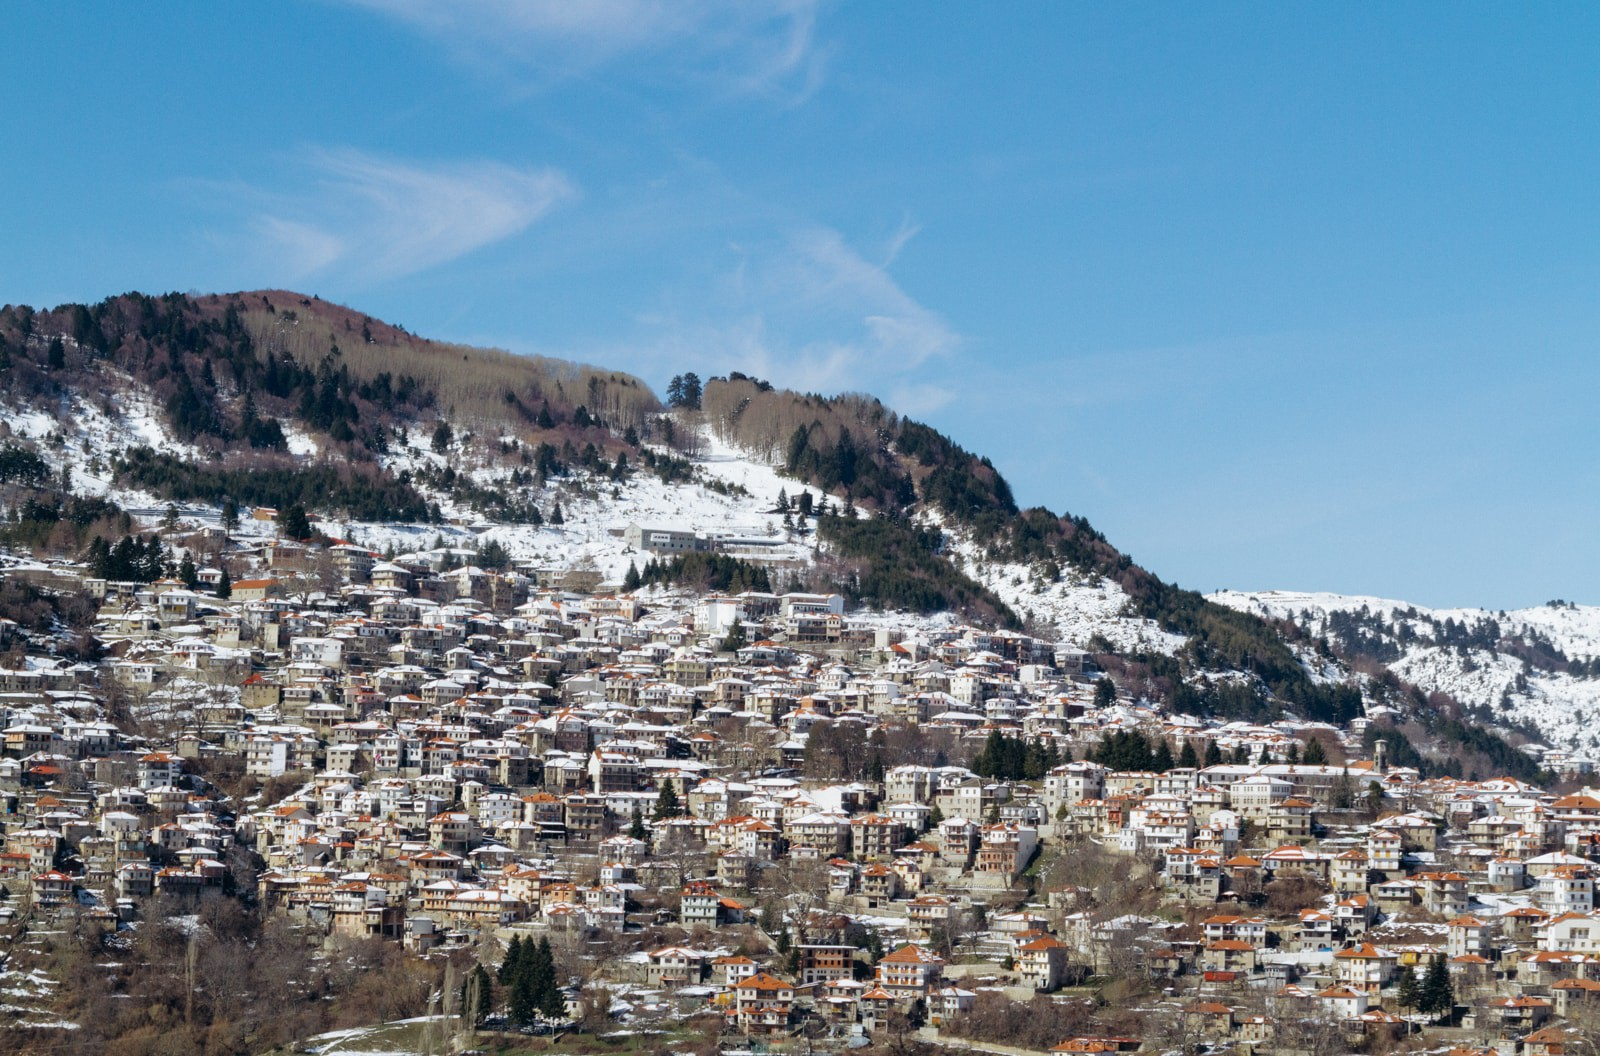 We at Monterrasol Travel welcome you to see Metsovo during multiday private car tour. Contact us if you would like to customize your tour to Metsovo.